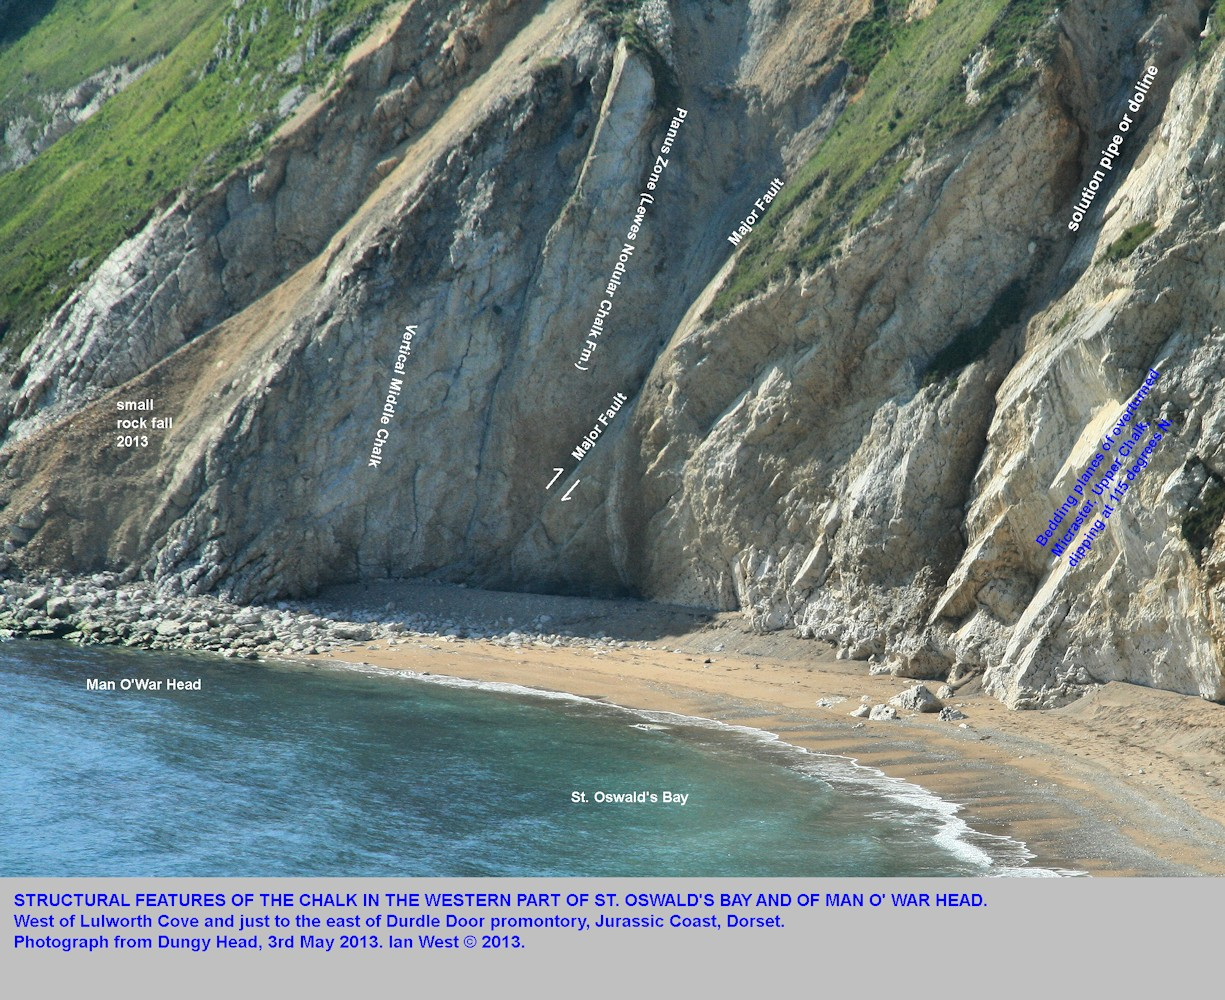 Structures in the Chalk at Man O'War Head, St. Oswald's Bay, west of Lulworth Cove, Dorset, and near Durdle Door